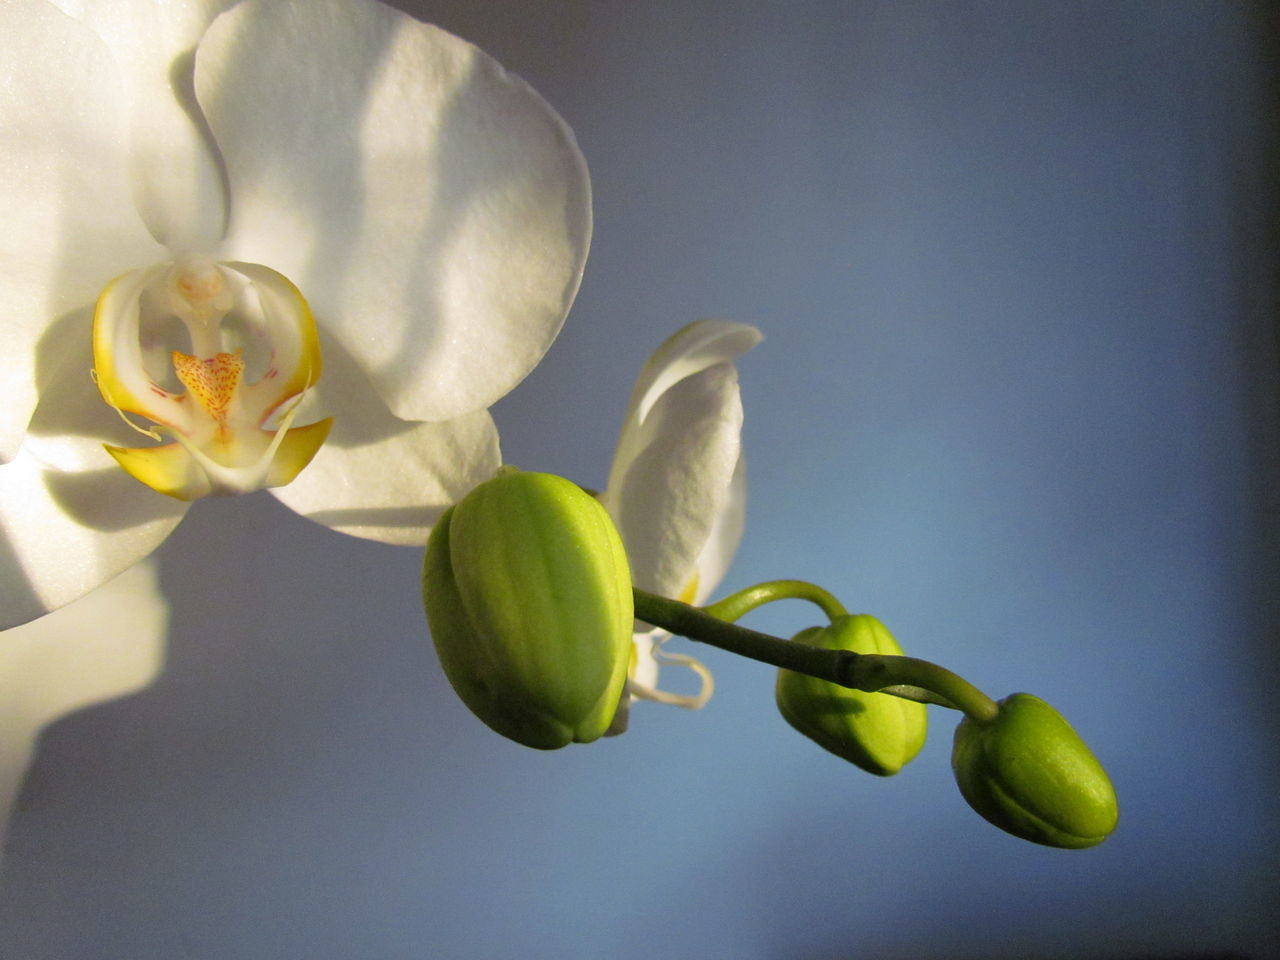 Flower Growth Fragility Nature Yellow Beauty In Nature Close-up Freshness No People Flower Head Outdoors Day Orchids Collection Beauty In Nature Photography Orchids EyeEm Gallery Phalaenopsis Orchid Petal Brazil Kikosene EyeEm EyeEm Gallery Nature_collection Nature